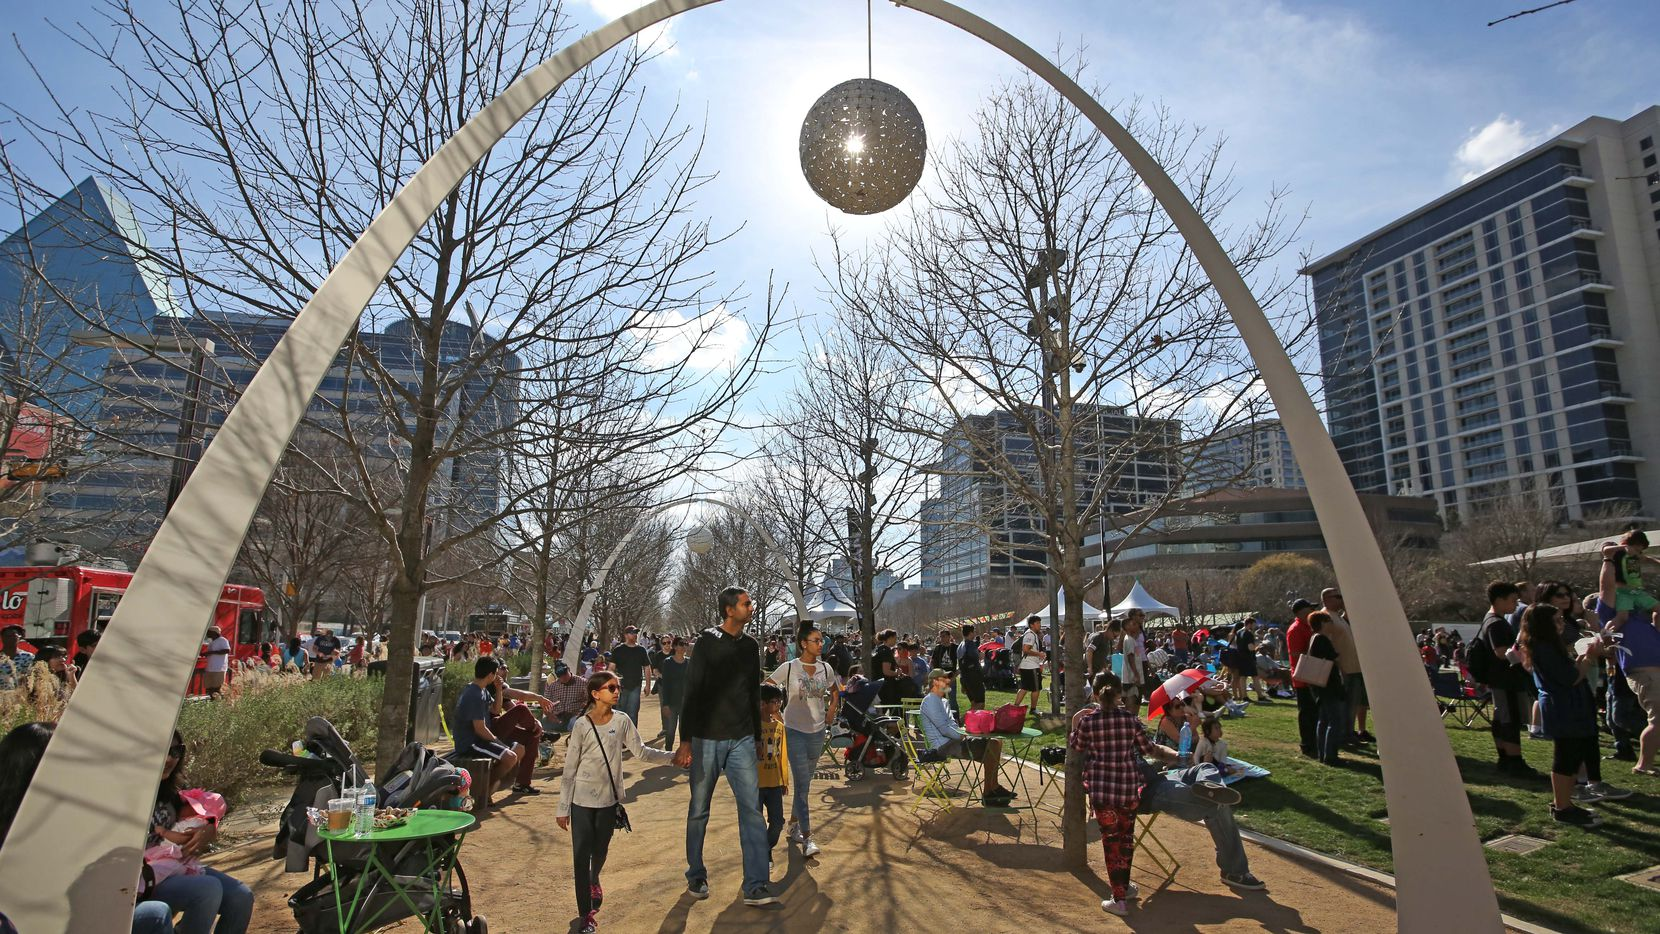 """Families took advantage of mild temperatures to enjoy the outdoors during """"Spring Fling"""" festivities at Klyde Warren Park in downtown Dallas in March 2018."""